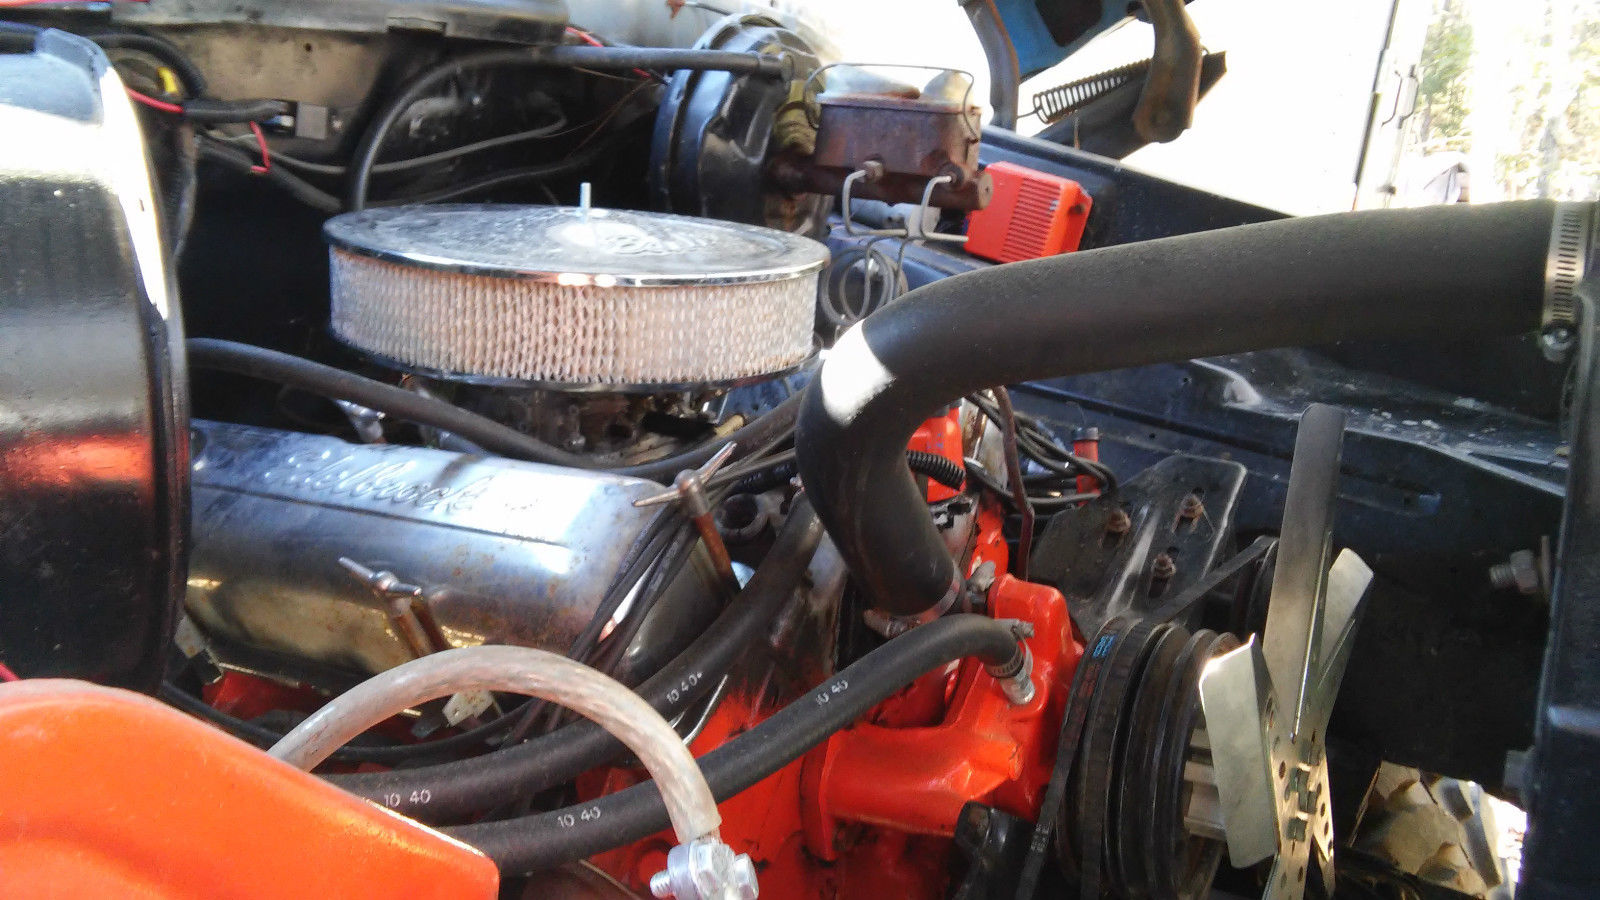 1976 ford f 100 ranger for sale in littleton north carolina united states - Ford Ranger 44 Lifted For Sale